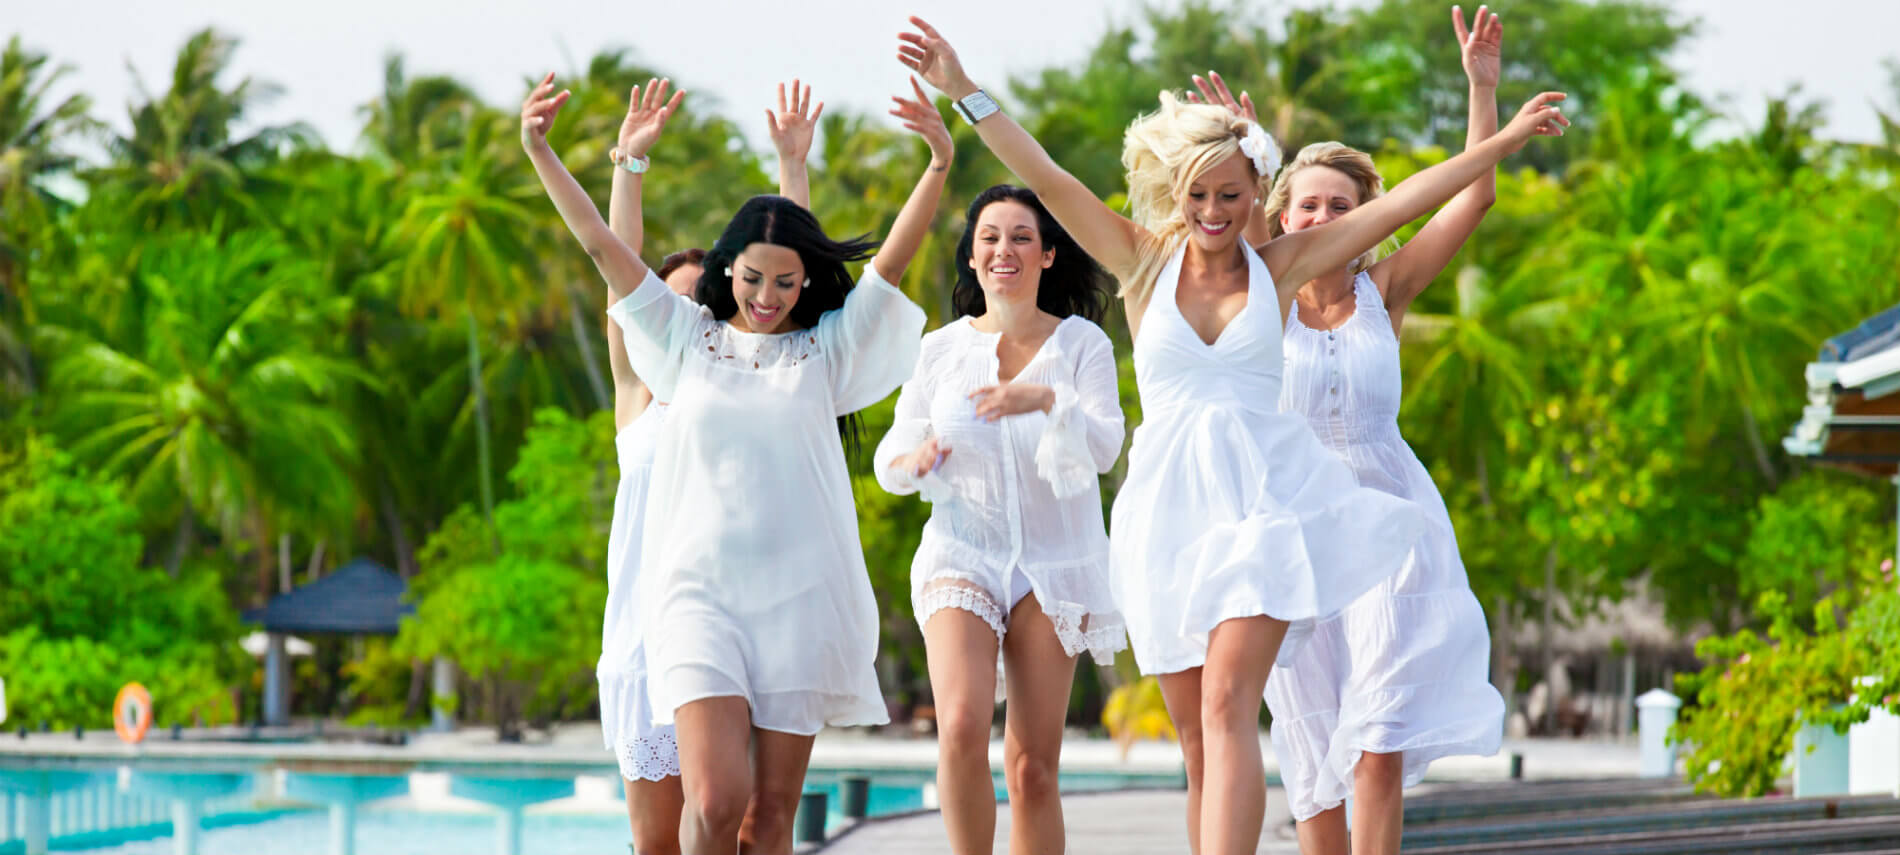 A group of women dressed in white summe wear, walking happily alongside a pool with their hands triumphantly in the air,